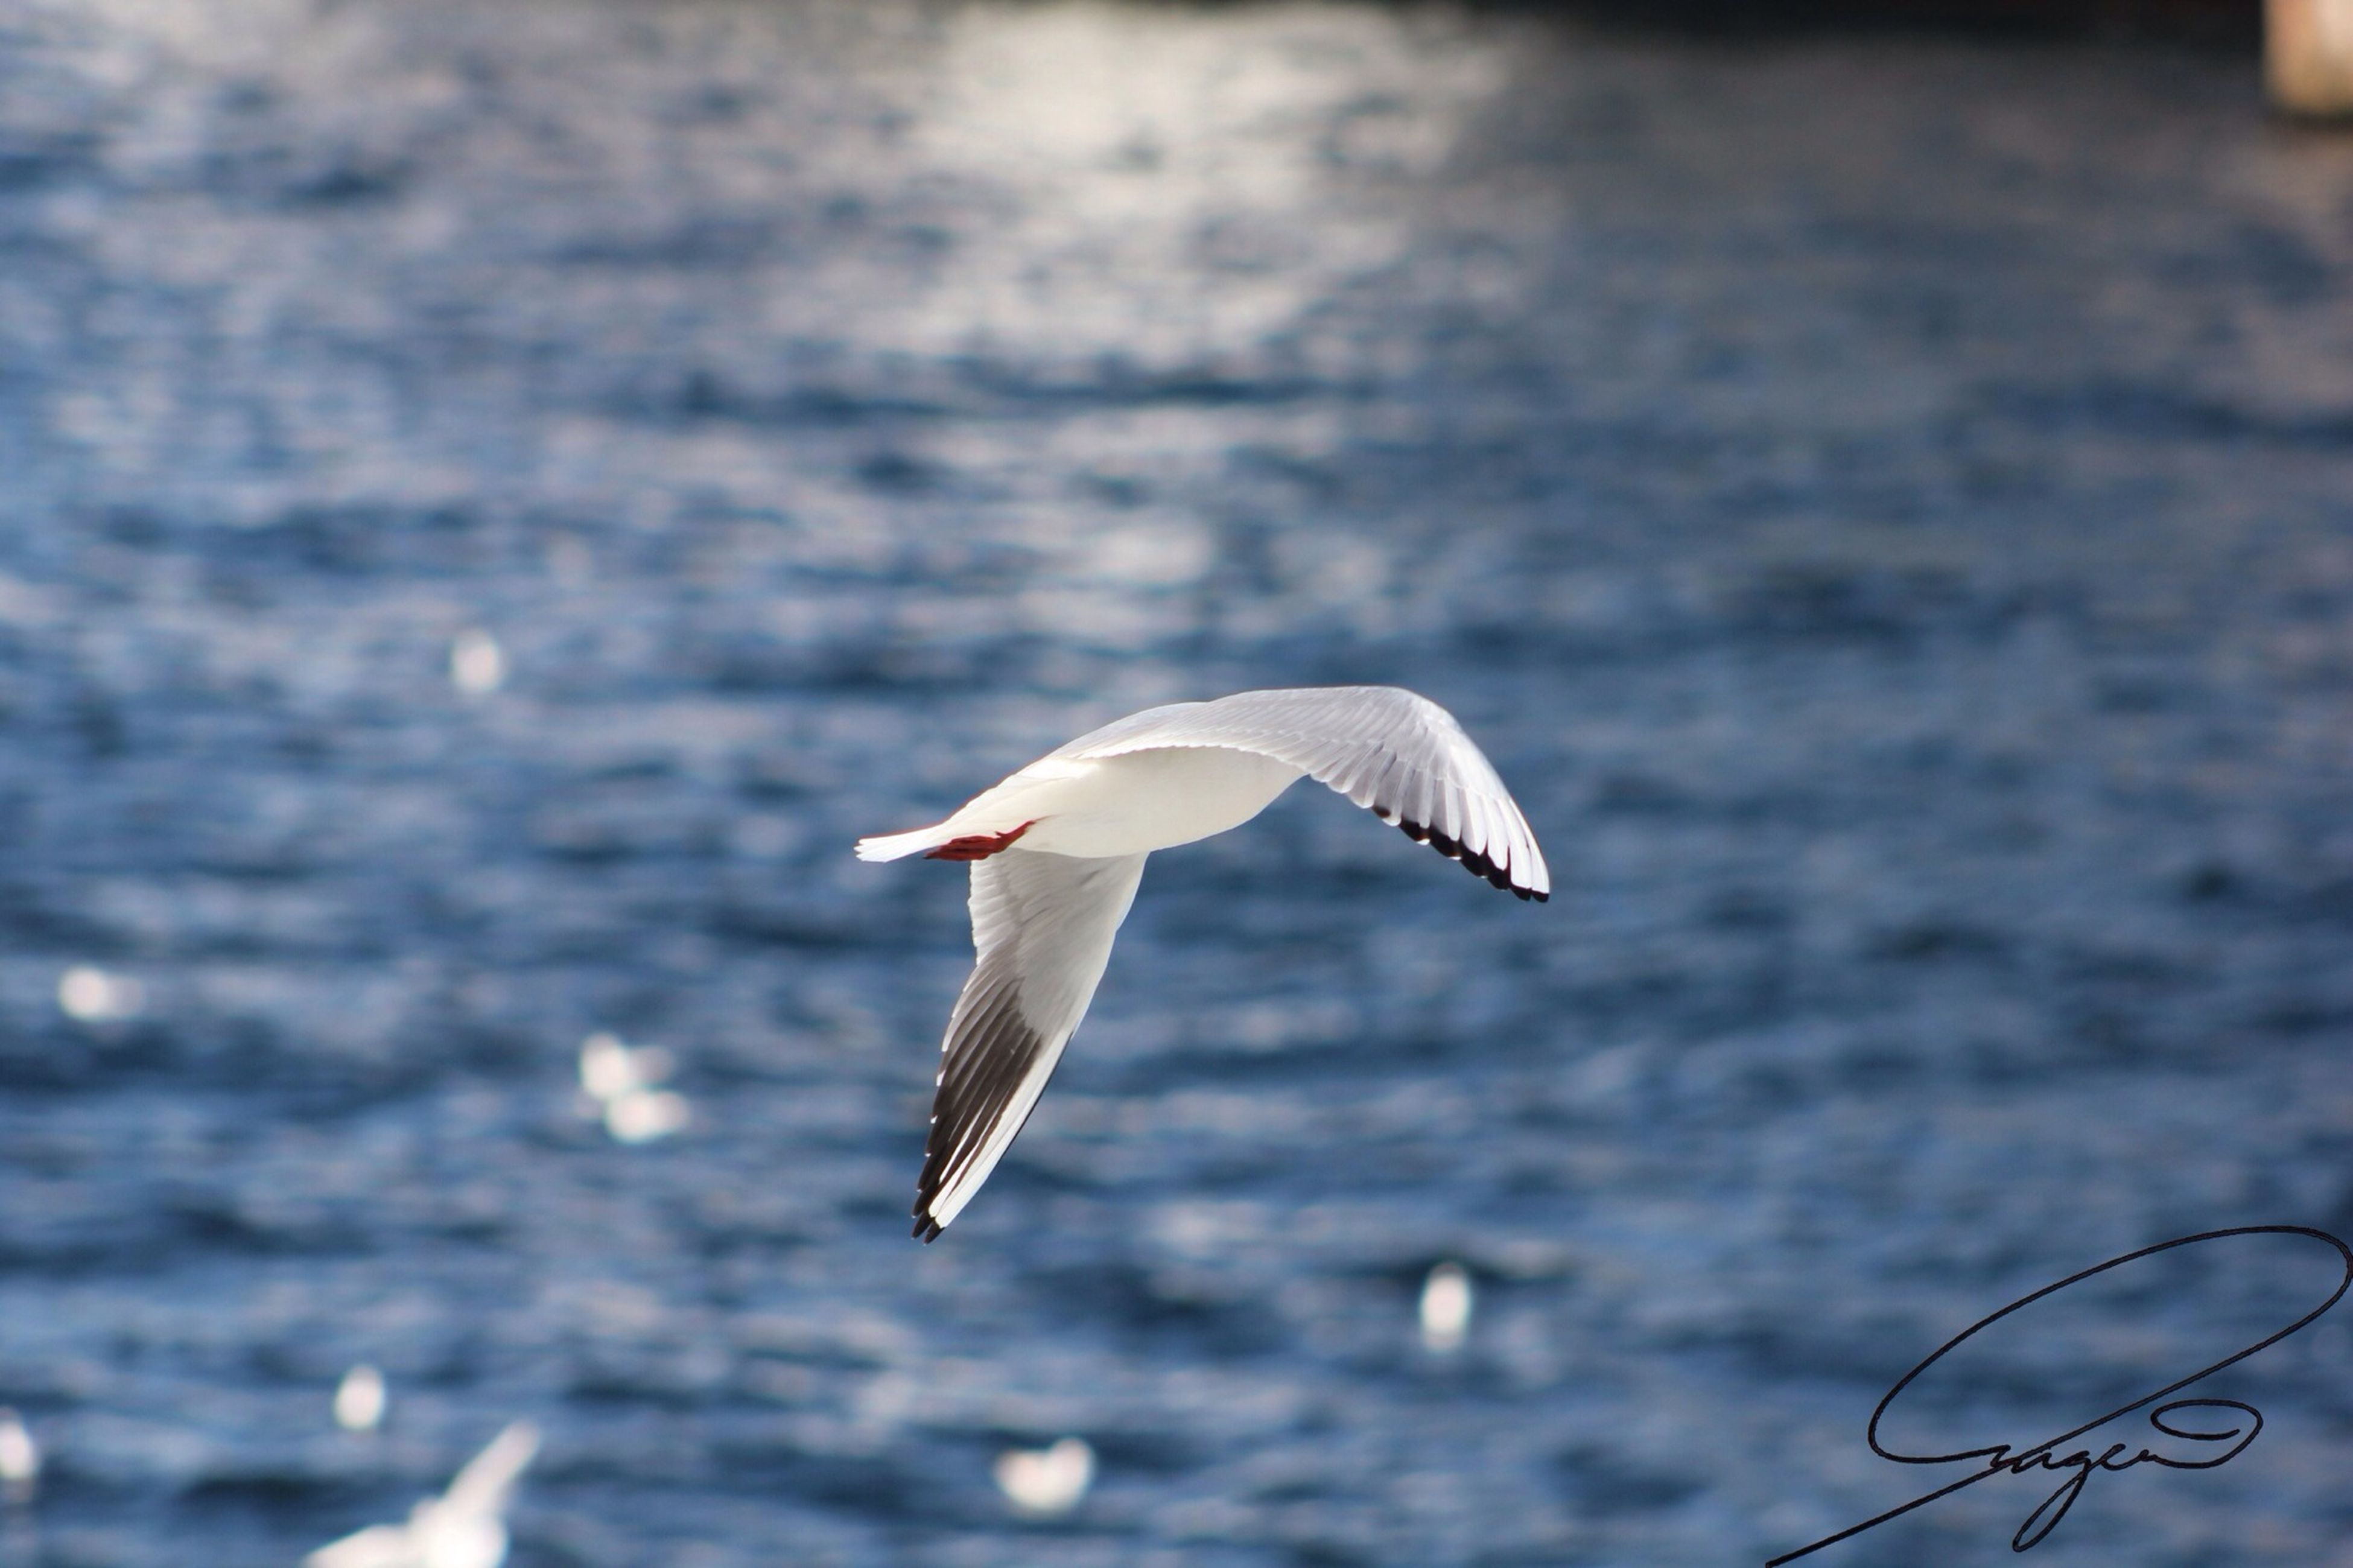 animal themes, animals in the wild, bird, one animal, flying, spread wings, wildlife, seagull, mid-air, animal wing, water, focus on foreground, full length, nature, white color, side view, sea bird, outdoors, zoology, day